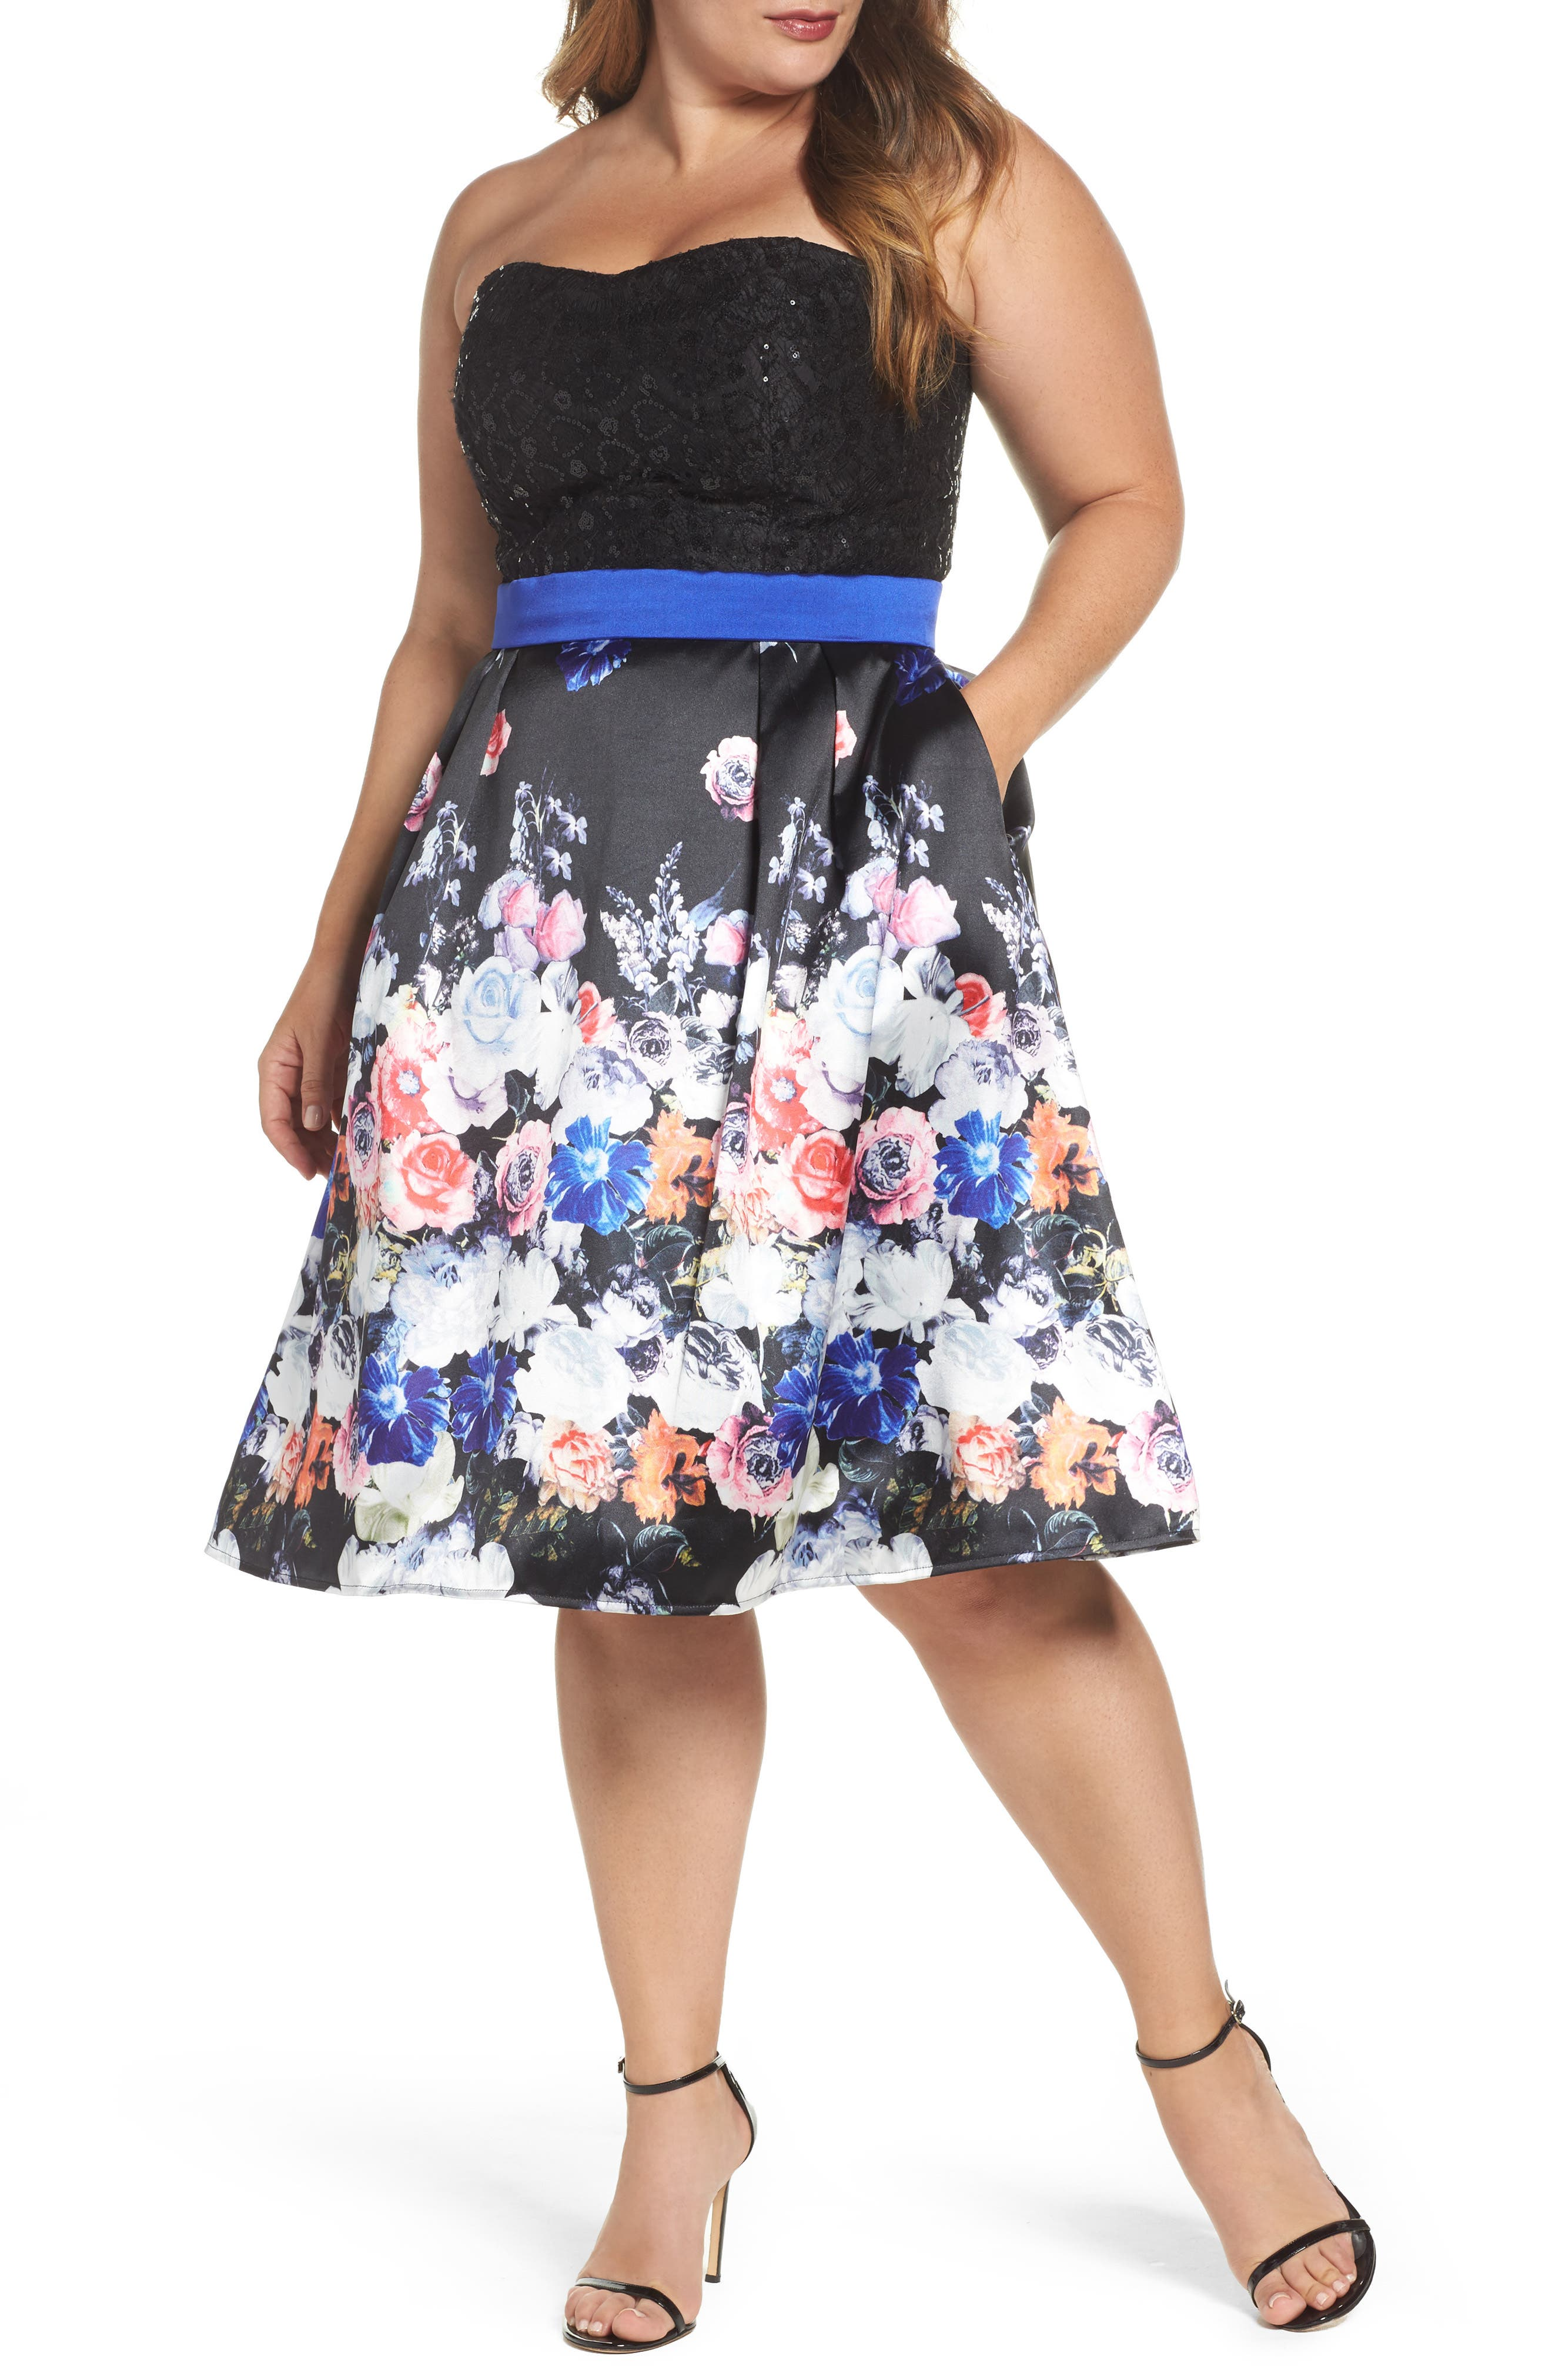 Main Image - Mac Duggal Floral Print Strapless Fit & Flare Dress (Plus Size)